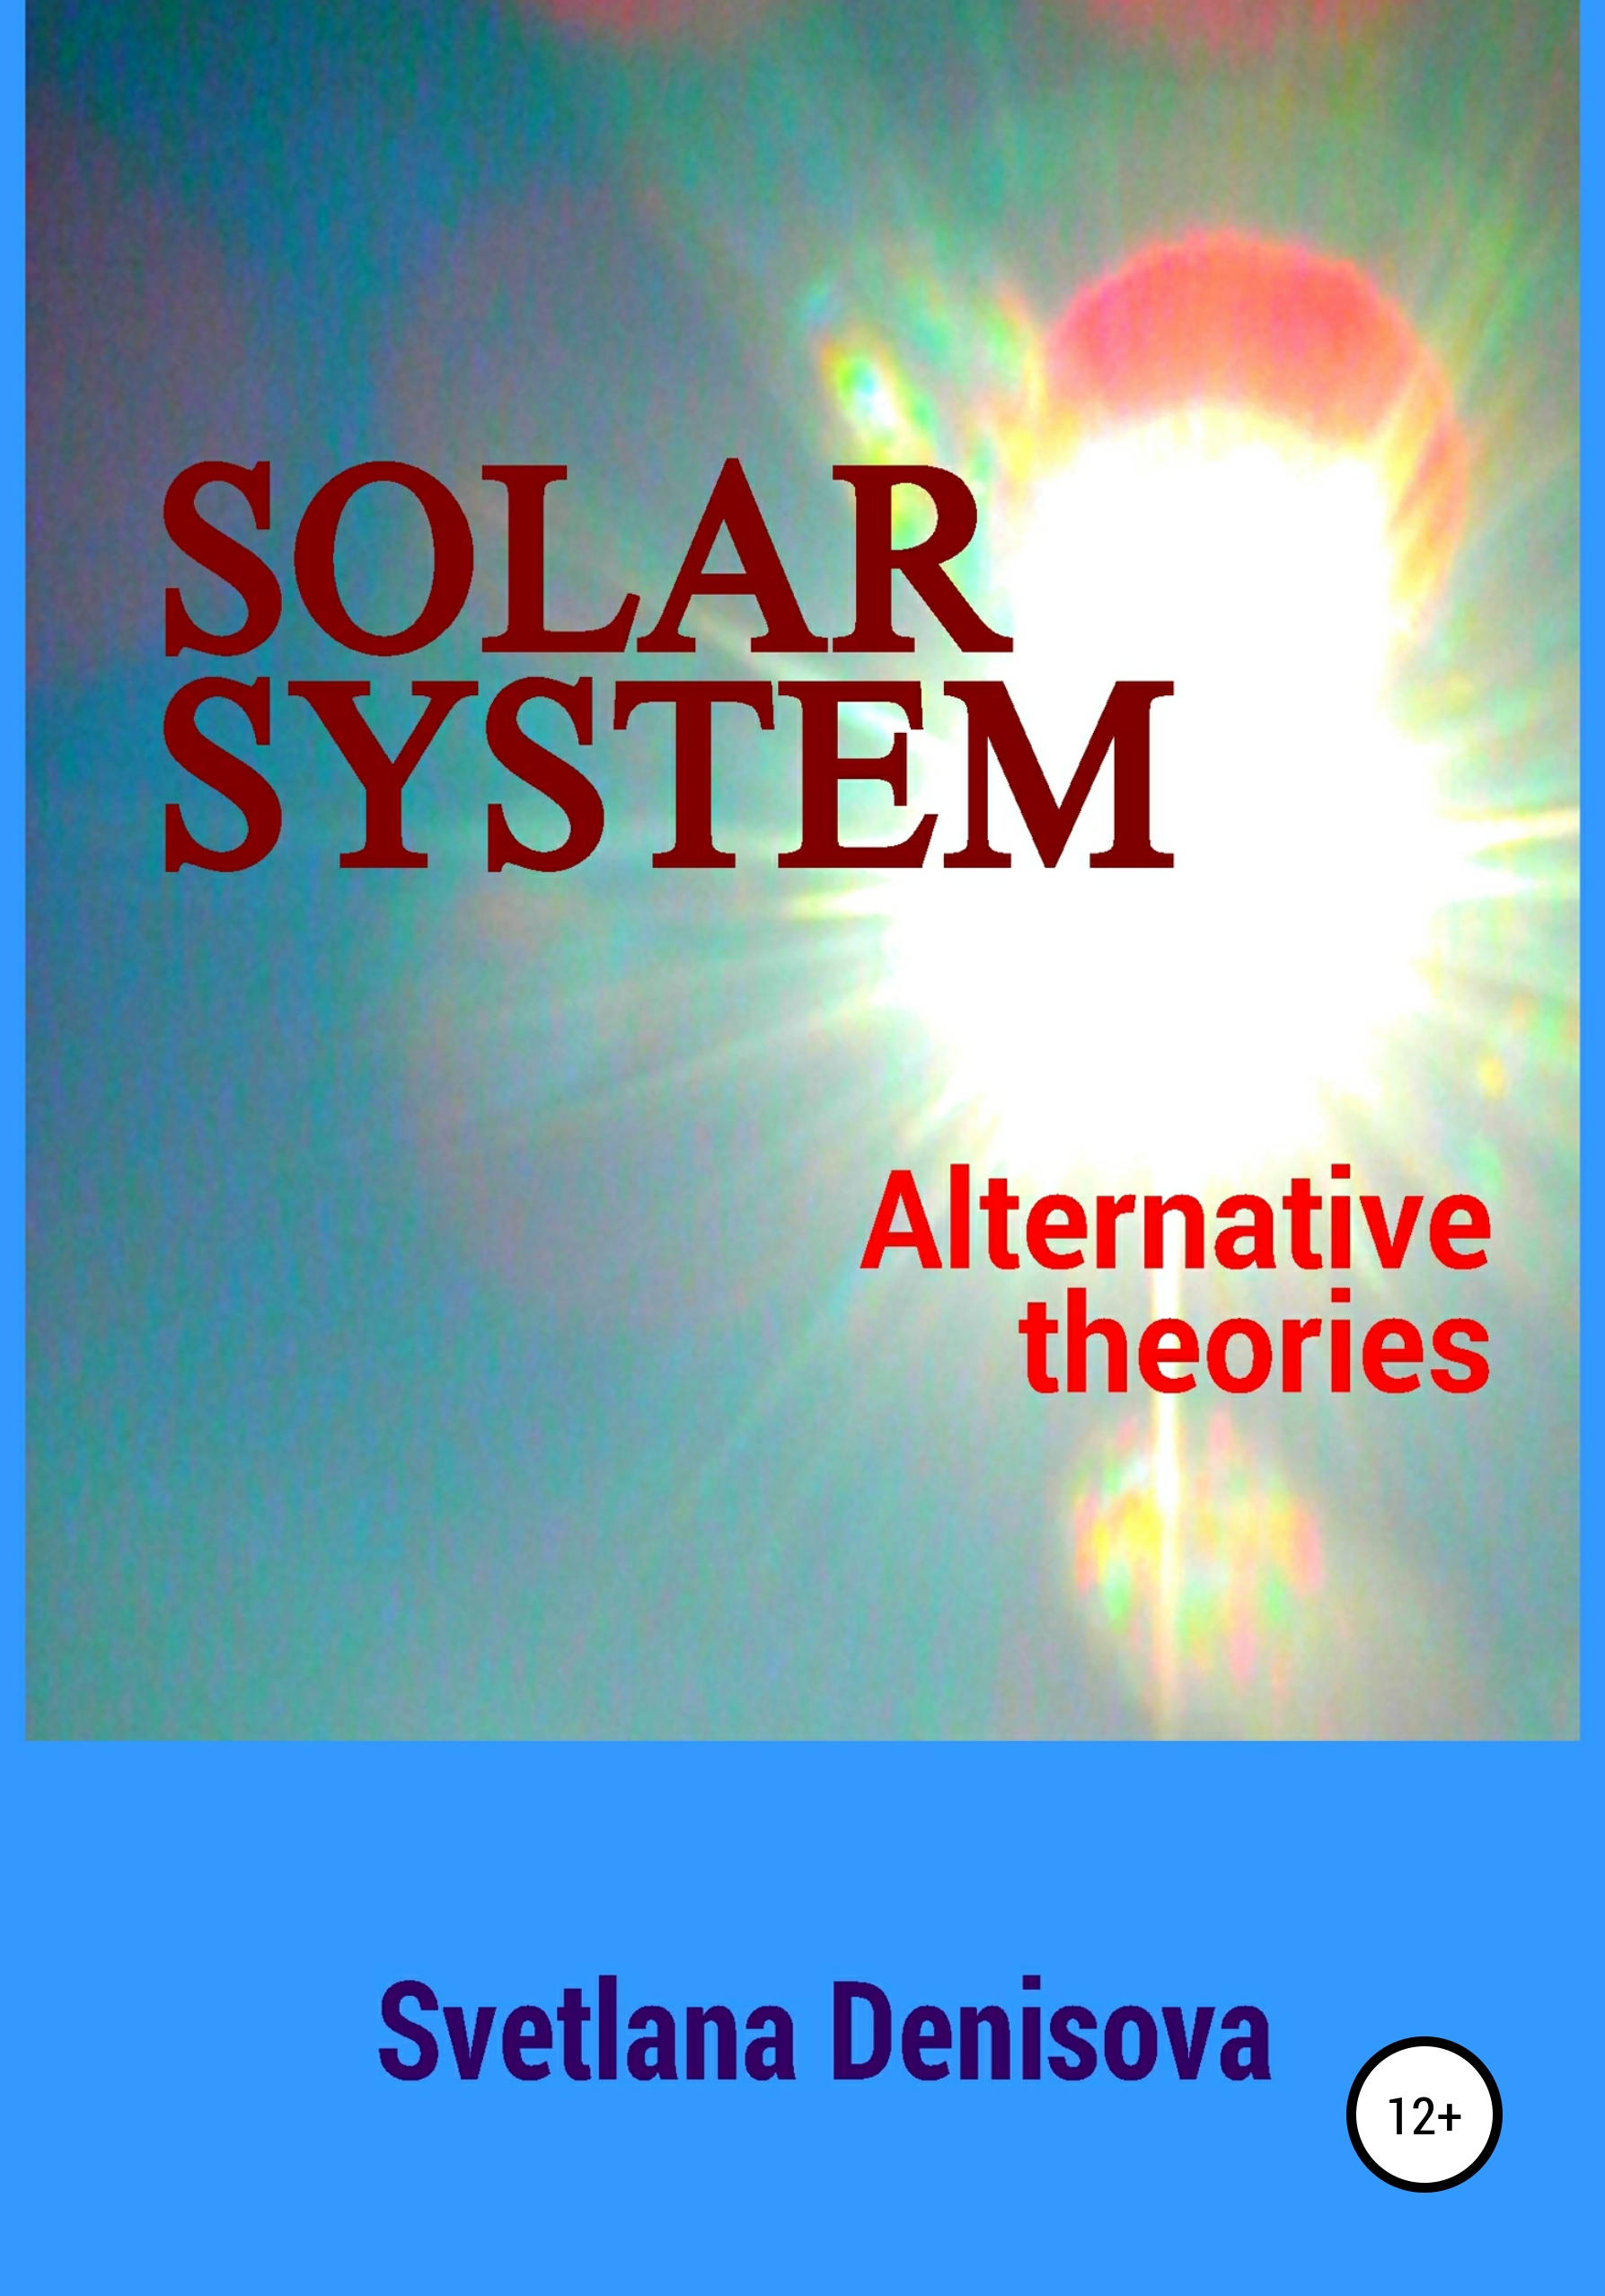 Solar system \/ Alternative theories